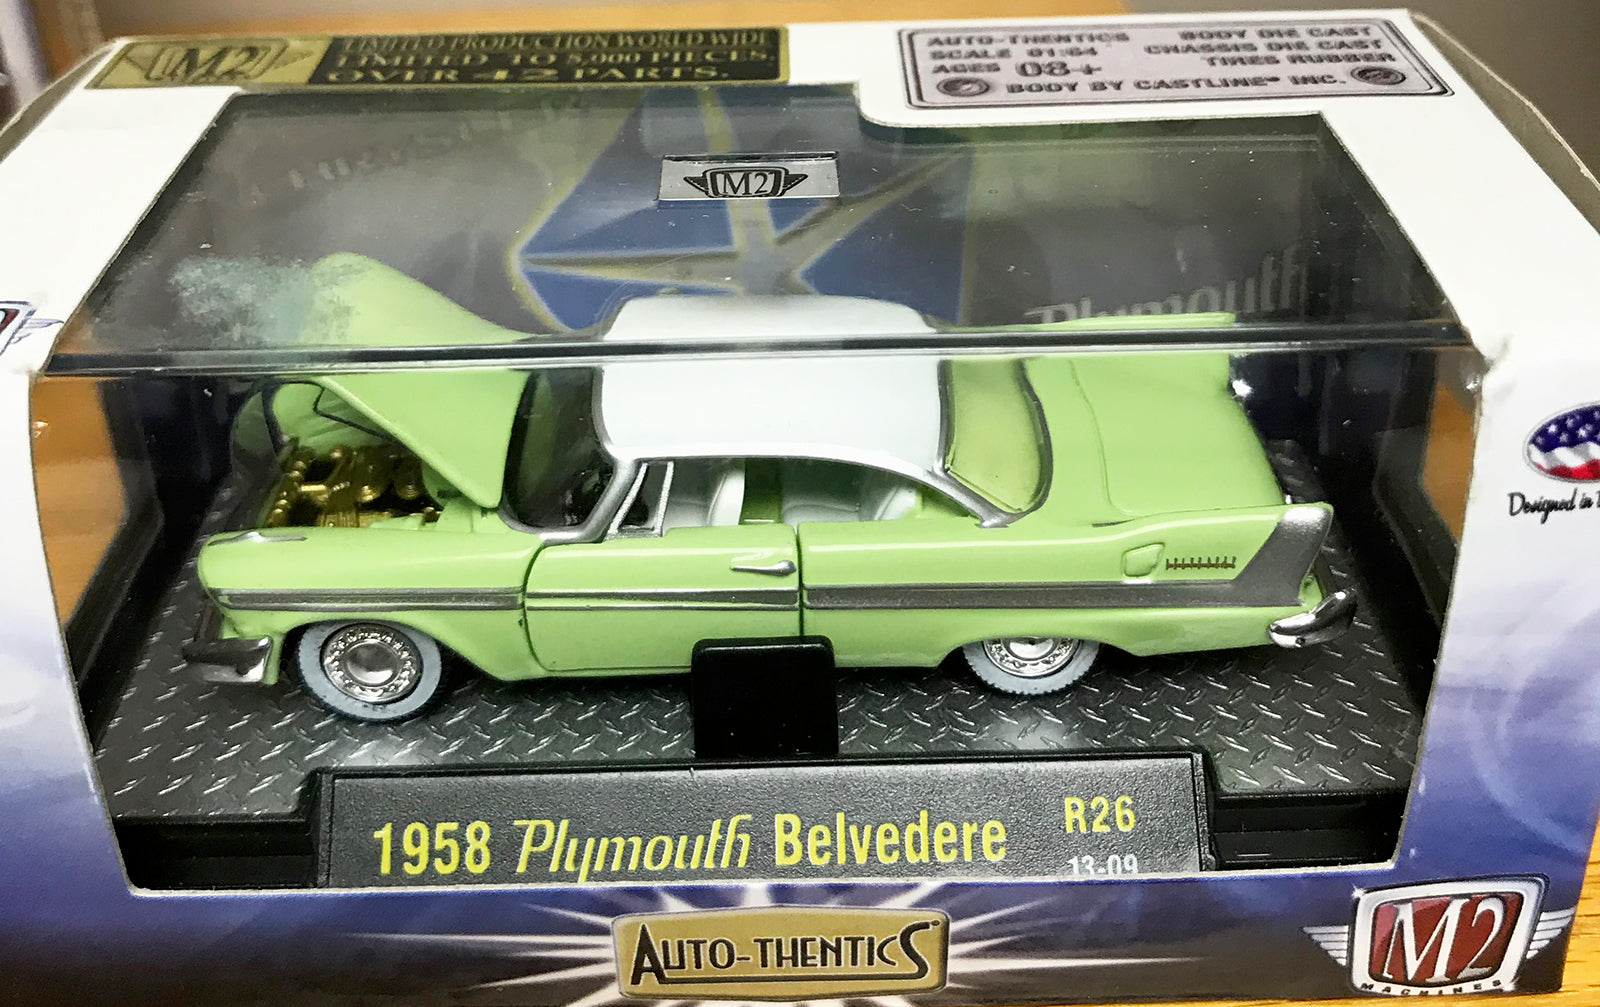 S 1958 Plymouth Belvedere - Light Green